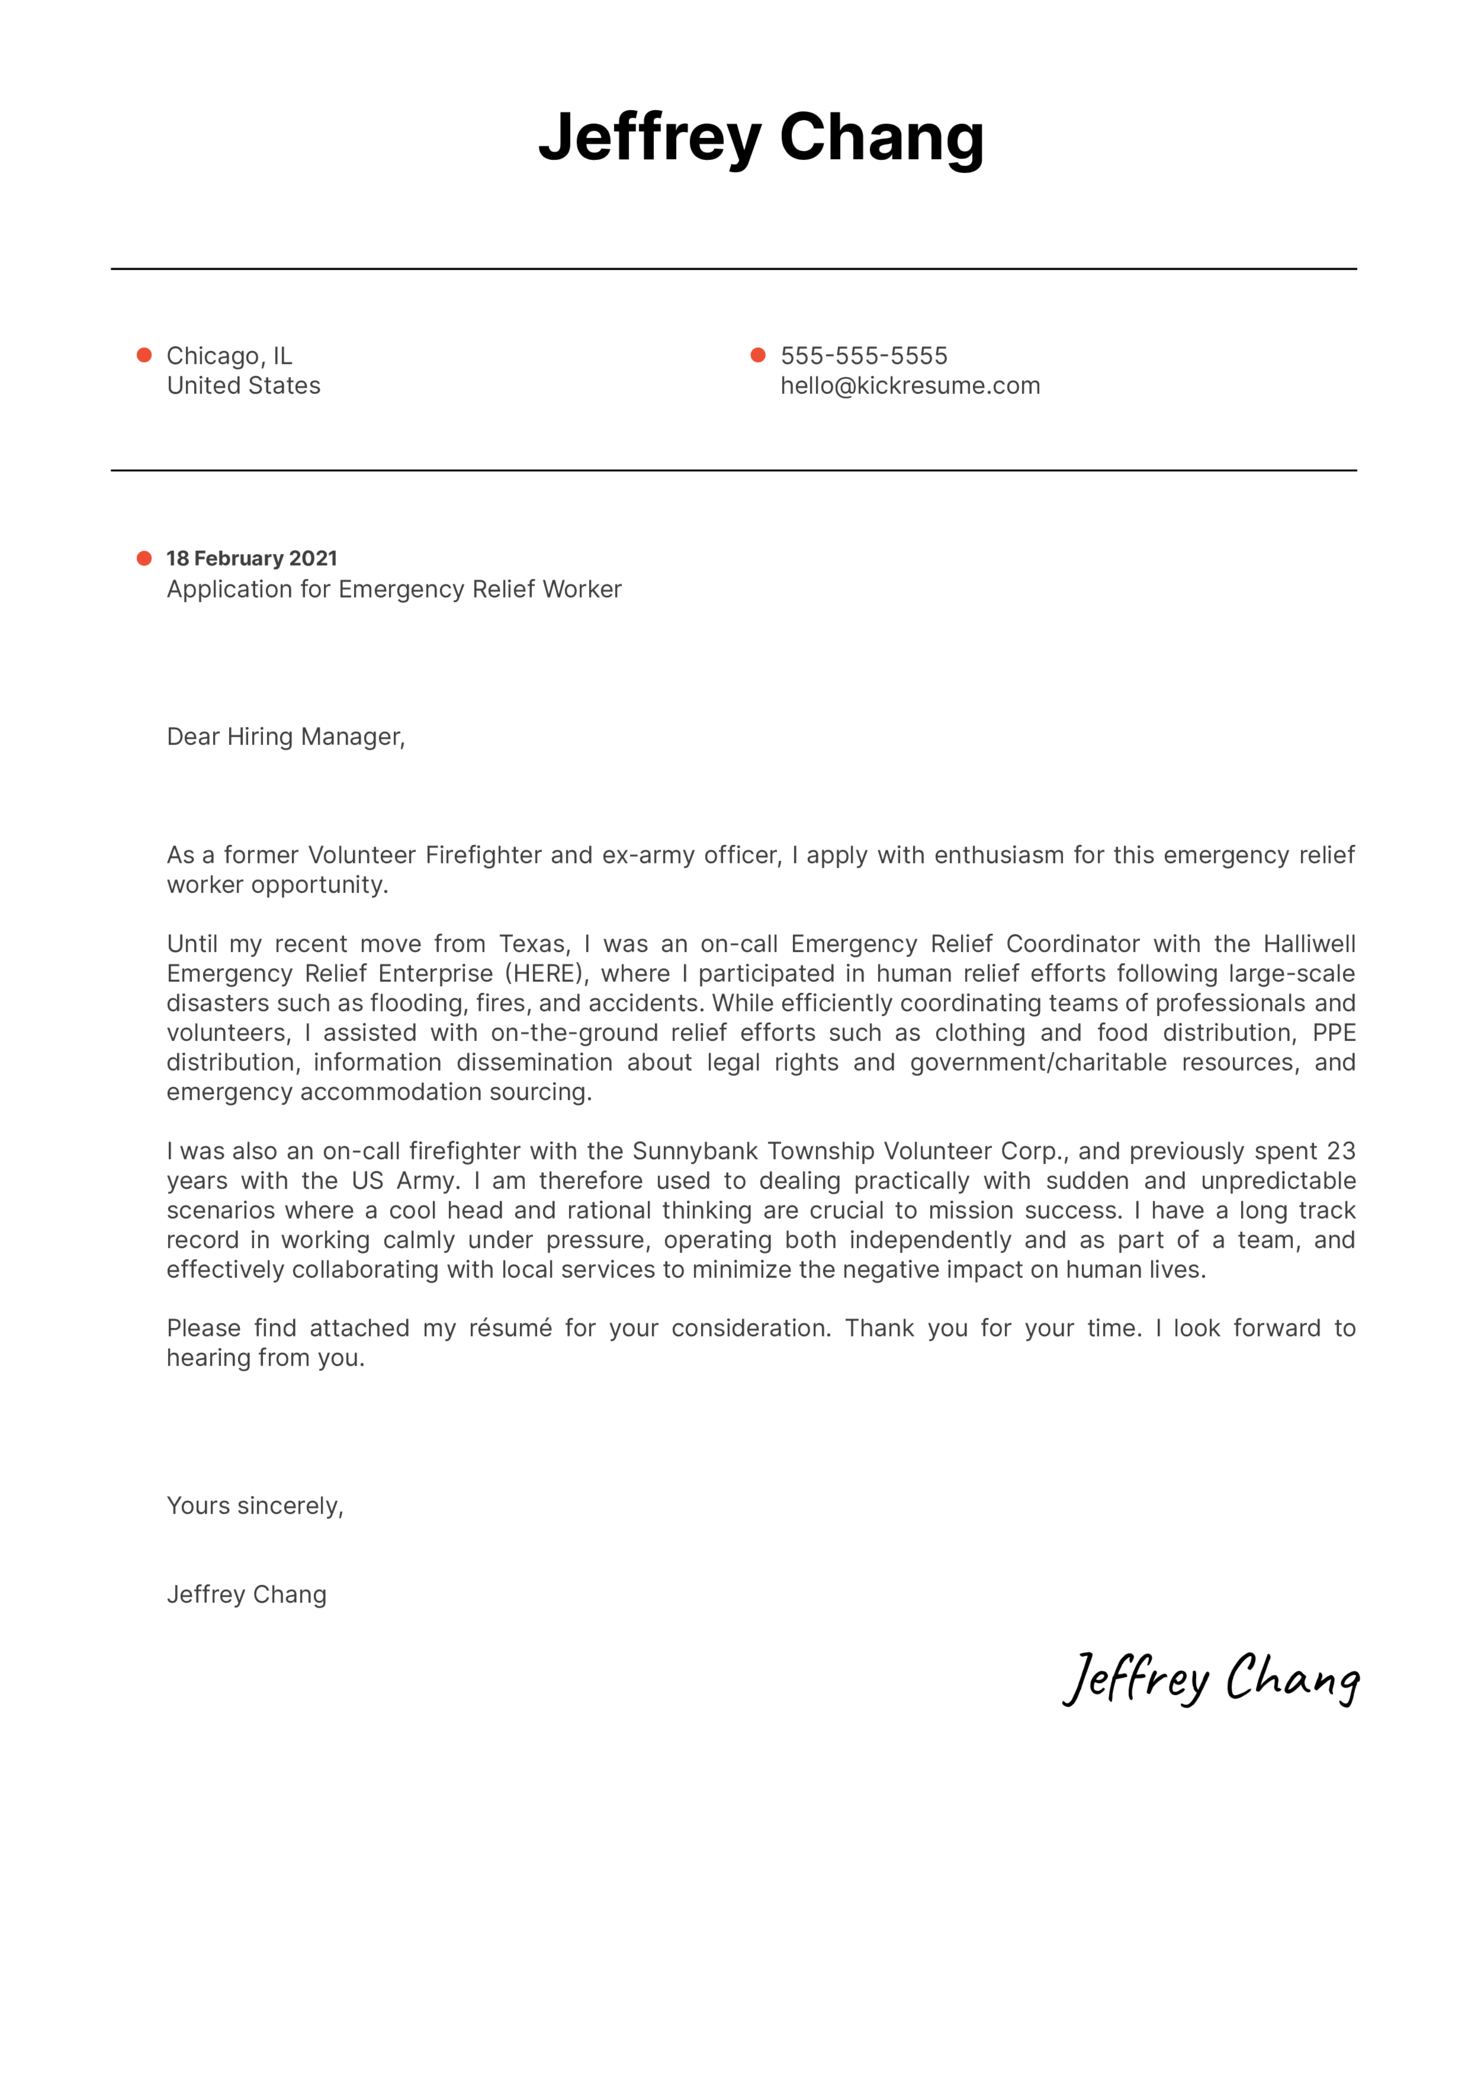 Emergency Relief Worker Cover Letter Sample